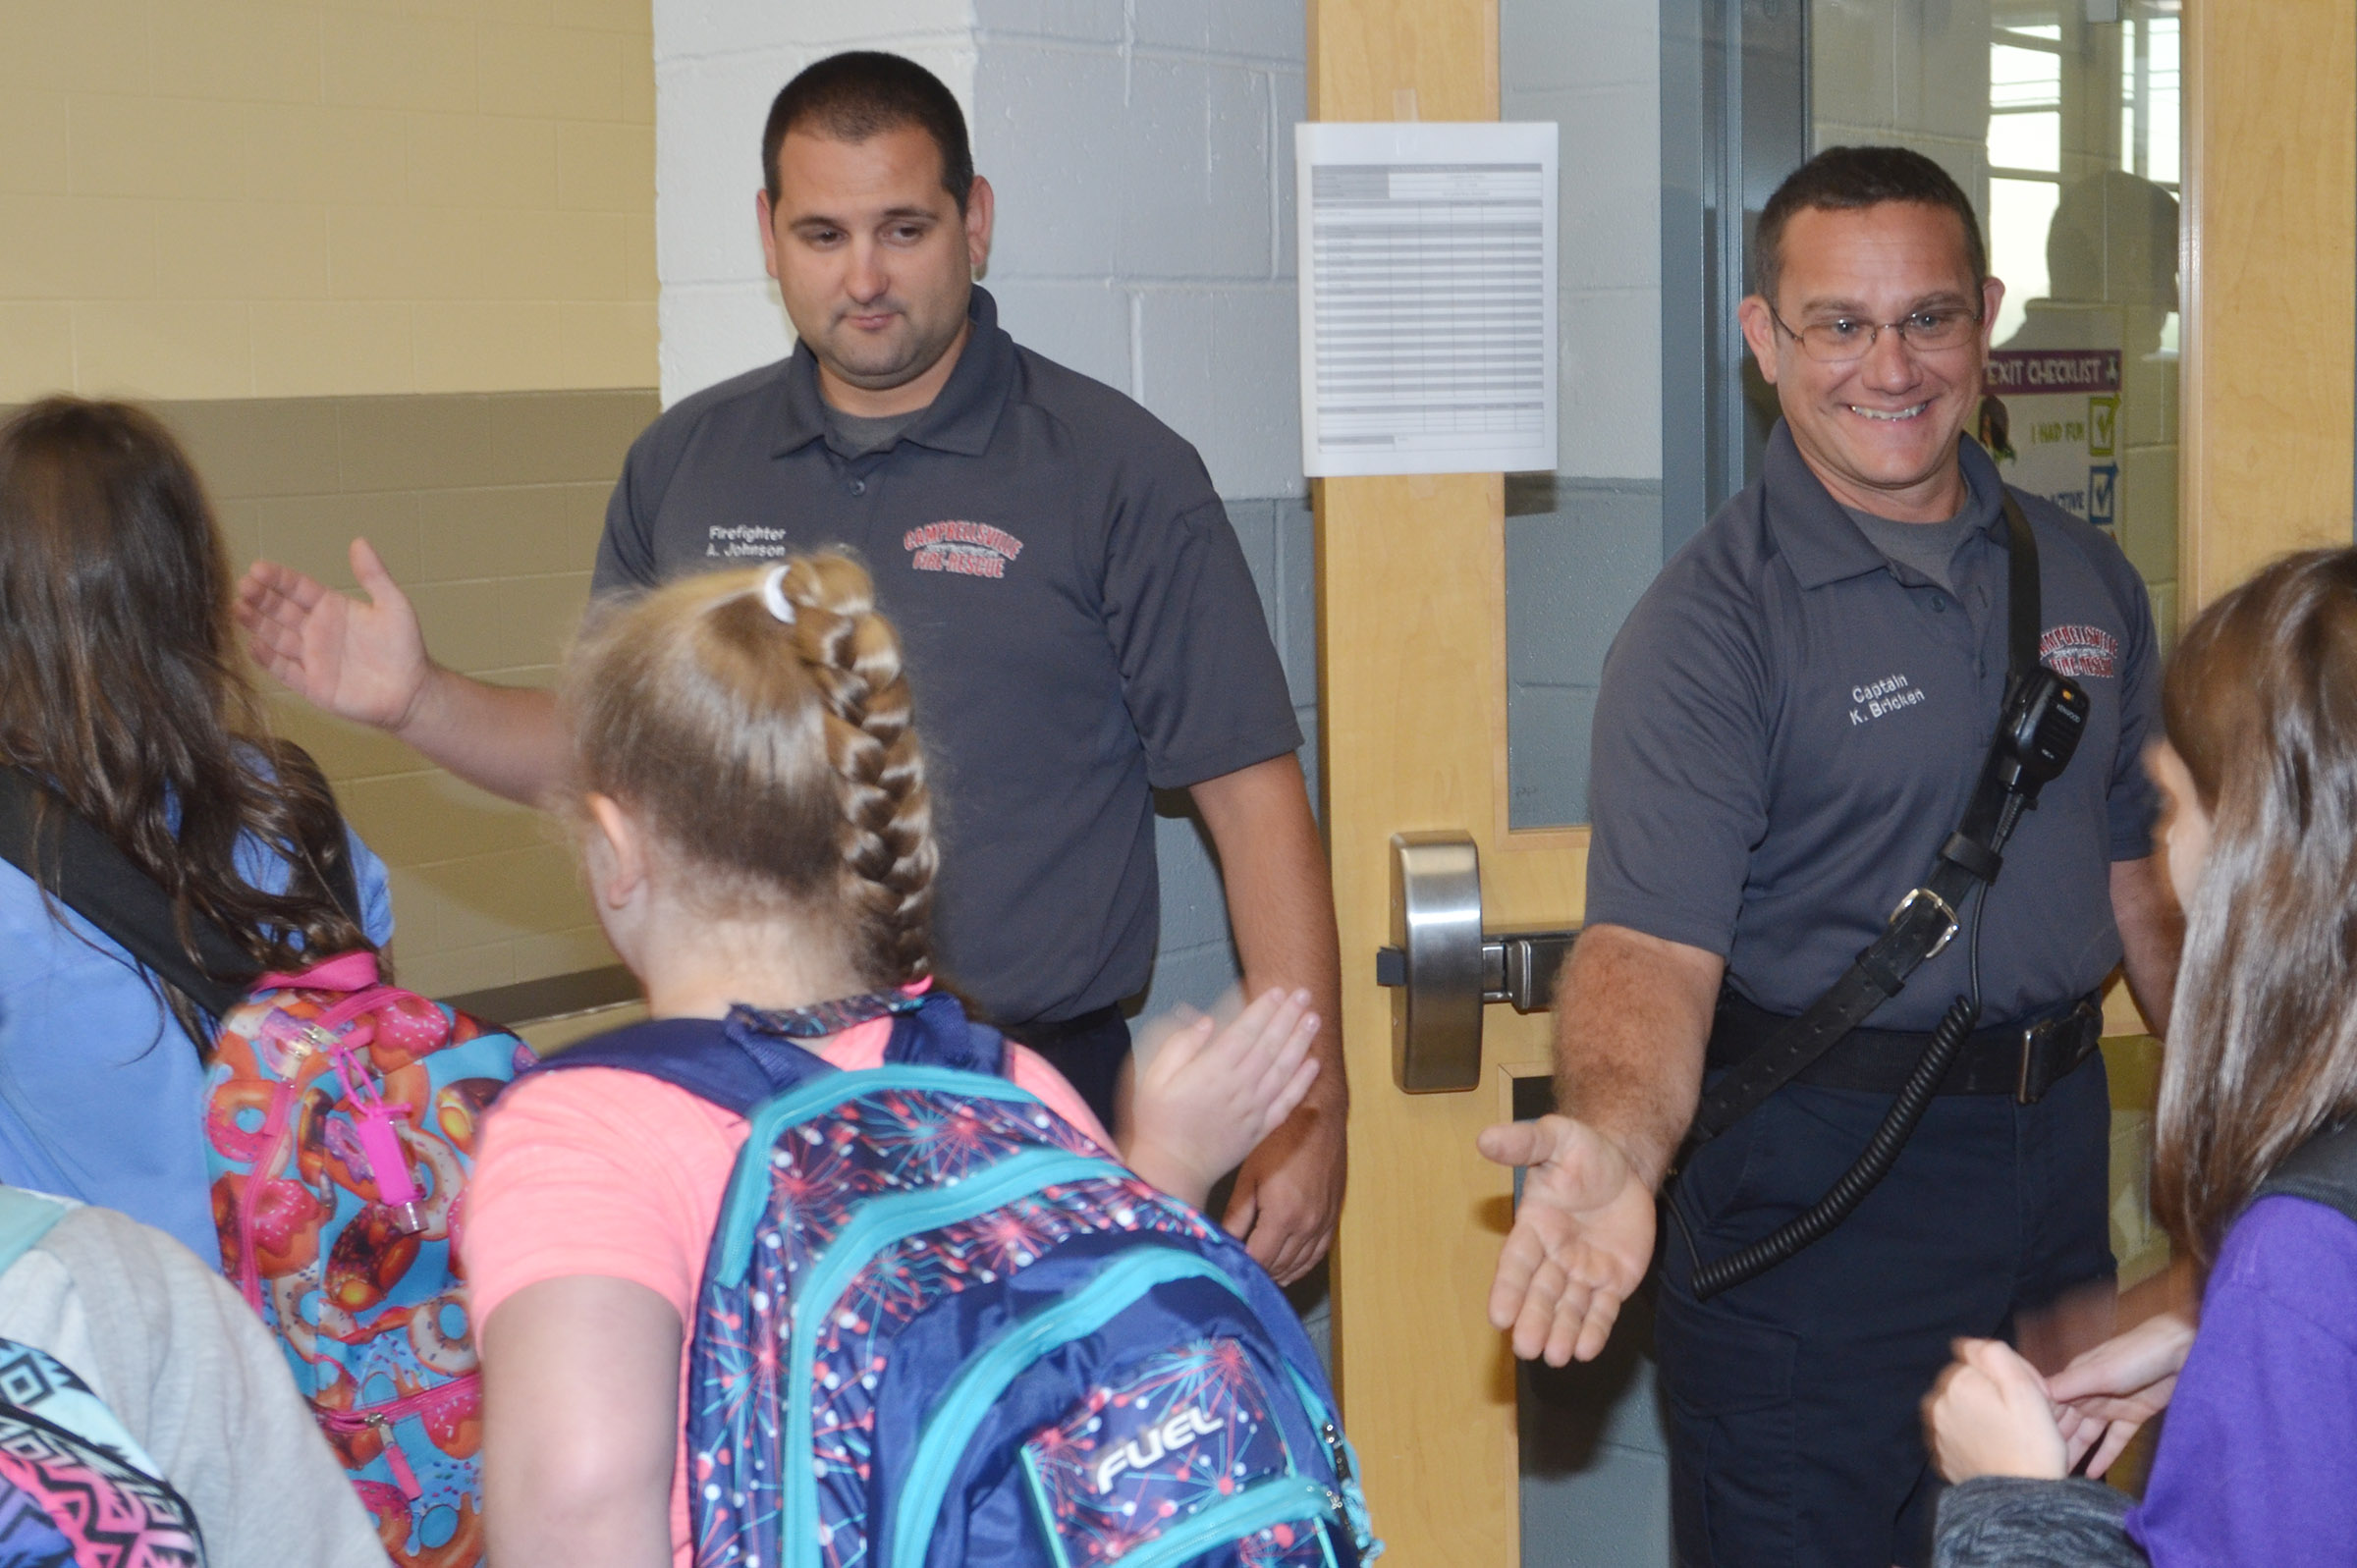 Campbellsville Fire & Rescue Captain Keith Bricken, at right, and firefighter Alex Johnson greet CES students.